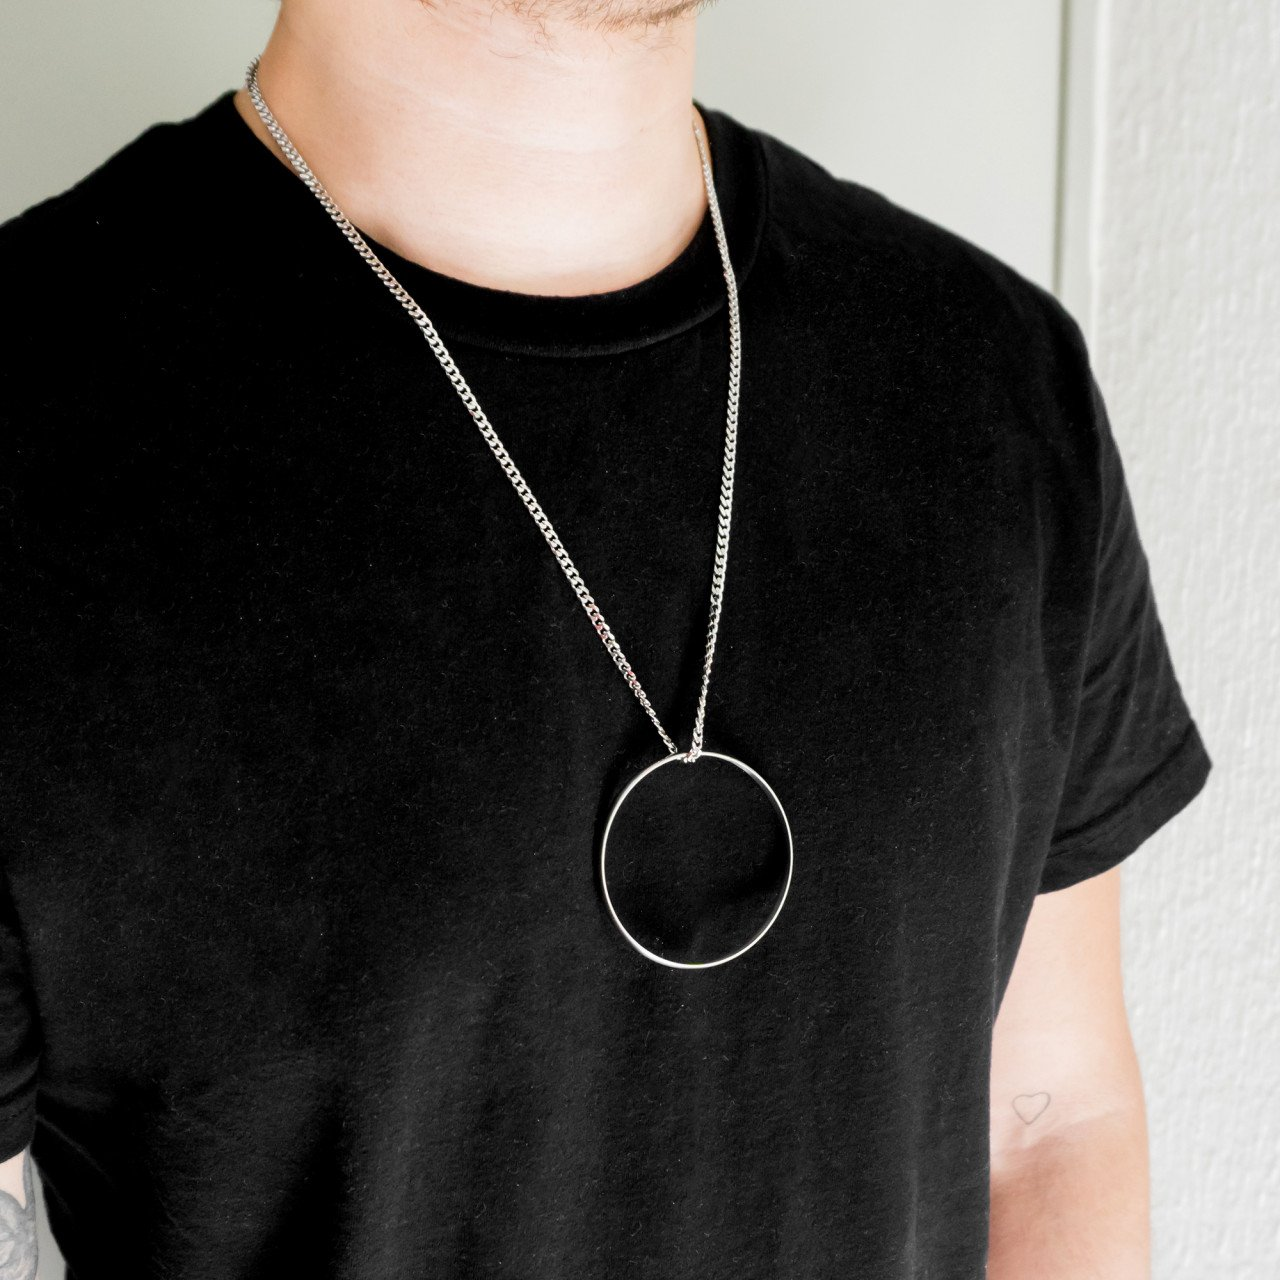 STEEL RING NECKLACE